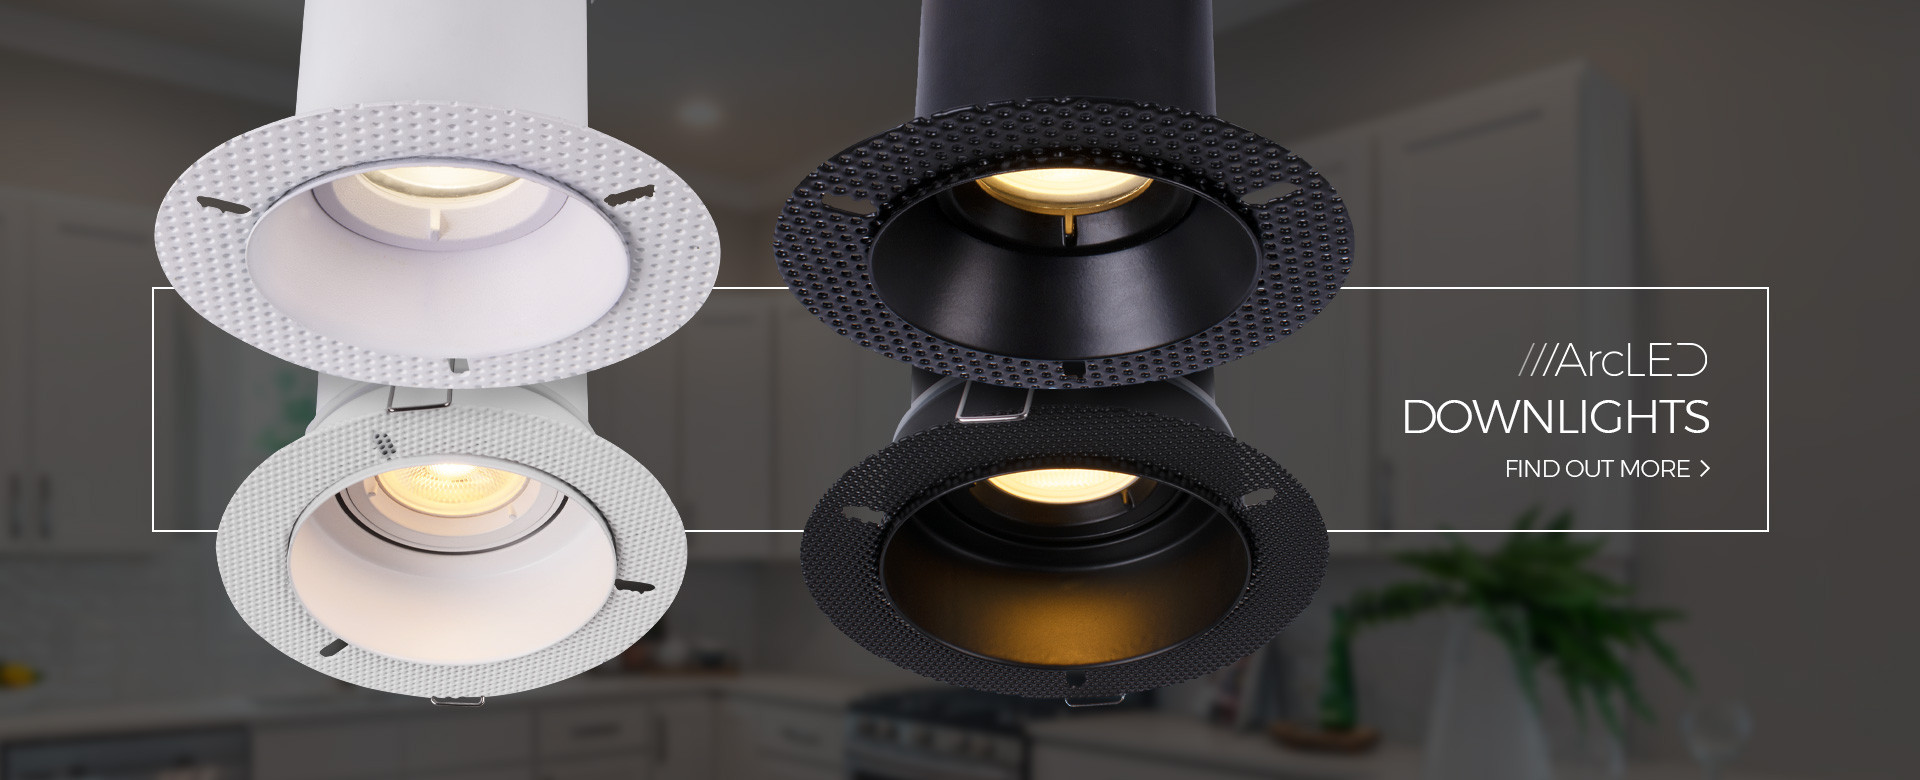 Arc LED Plaster in Downlights